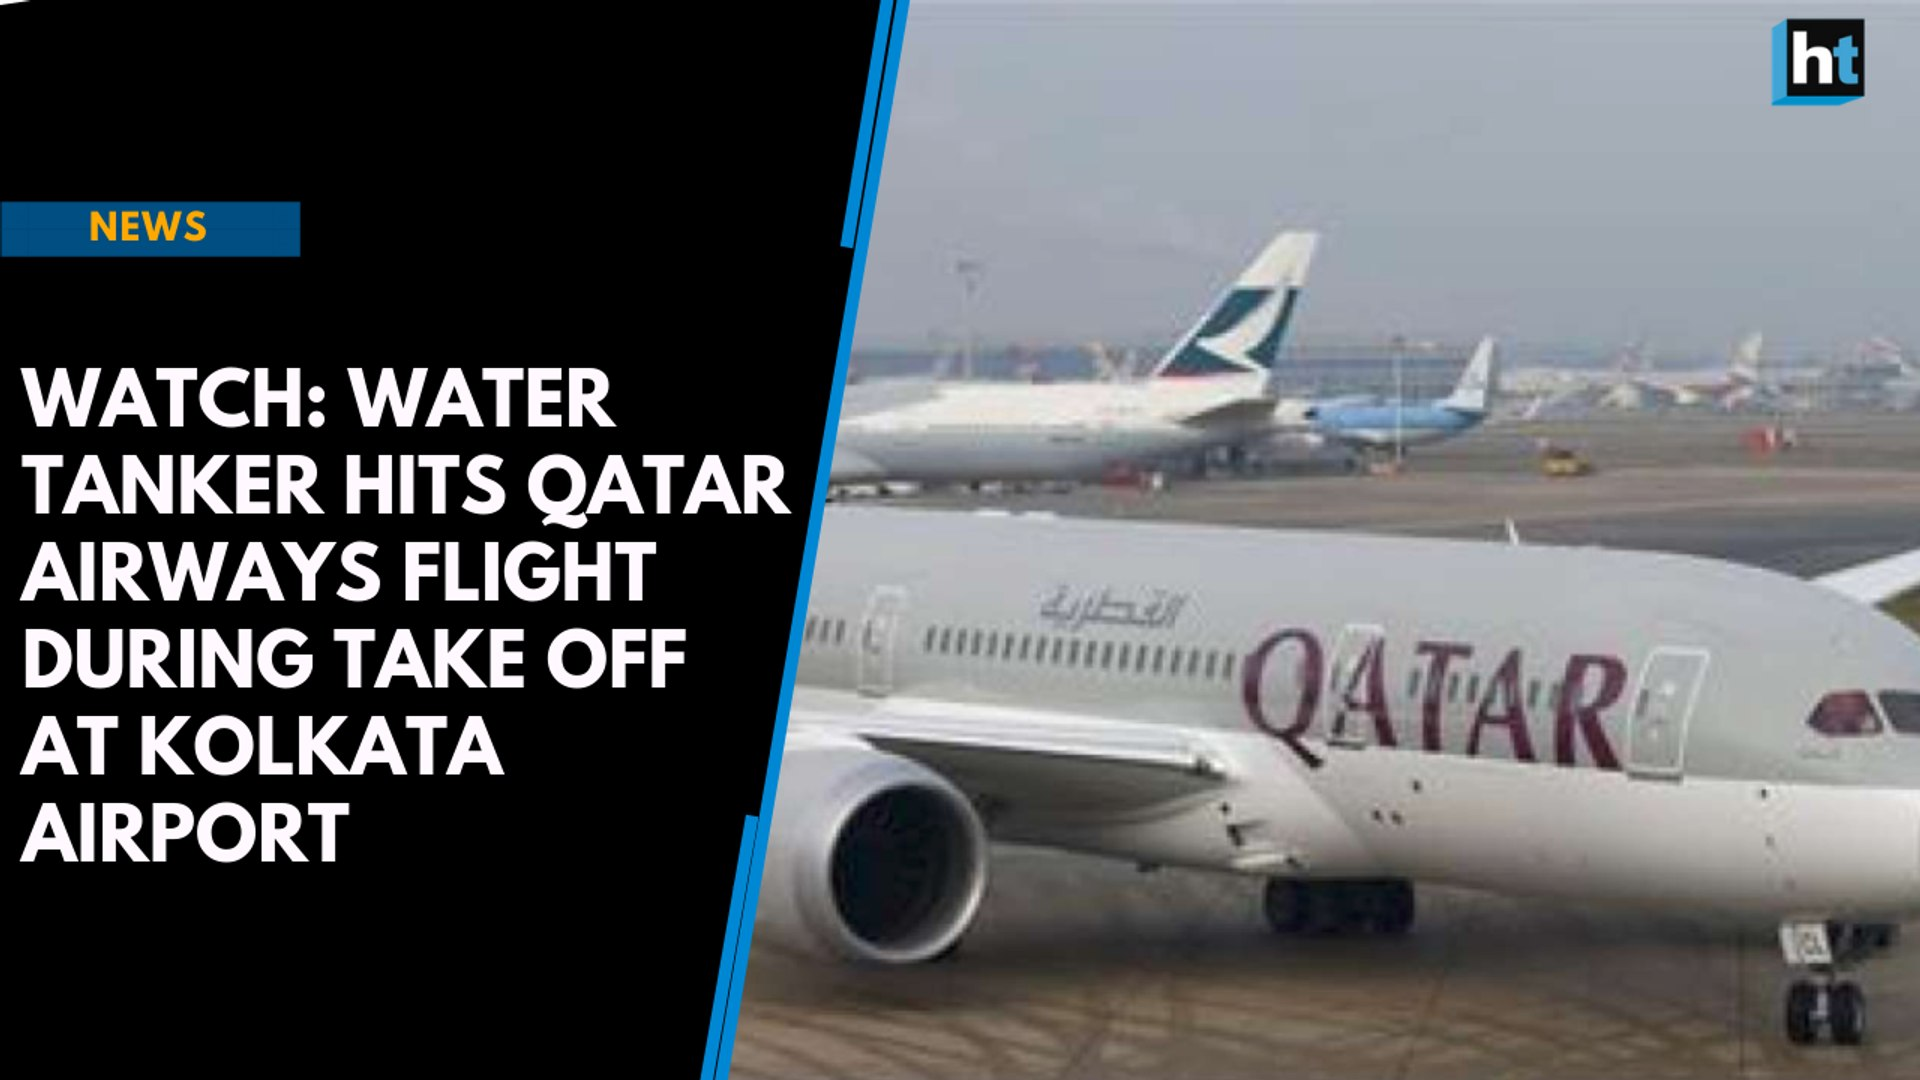 Watch: Water tanker hits Qatar Airways flight during take off at Kolkata Airport